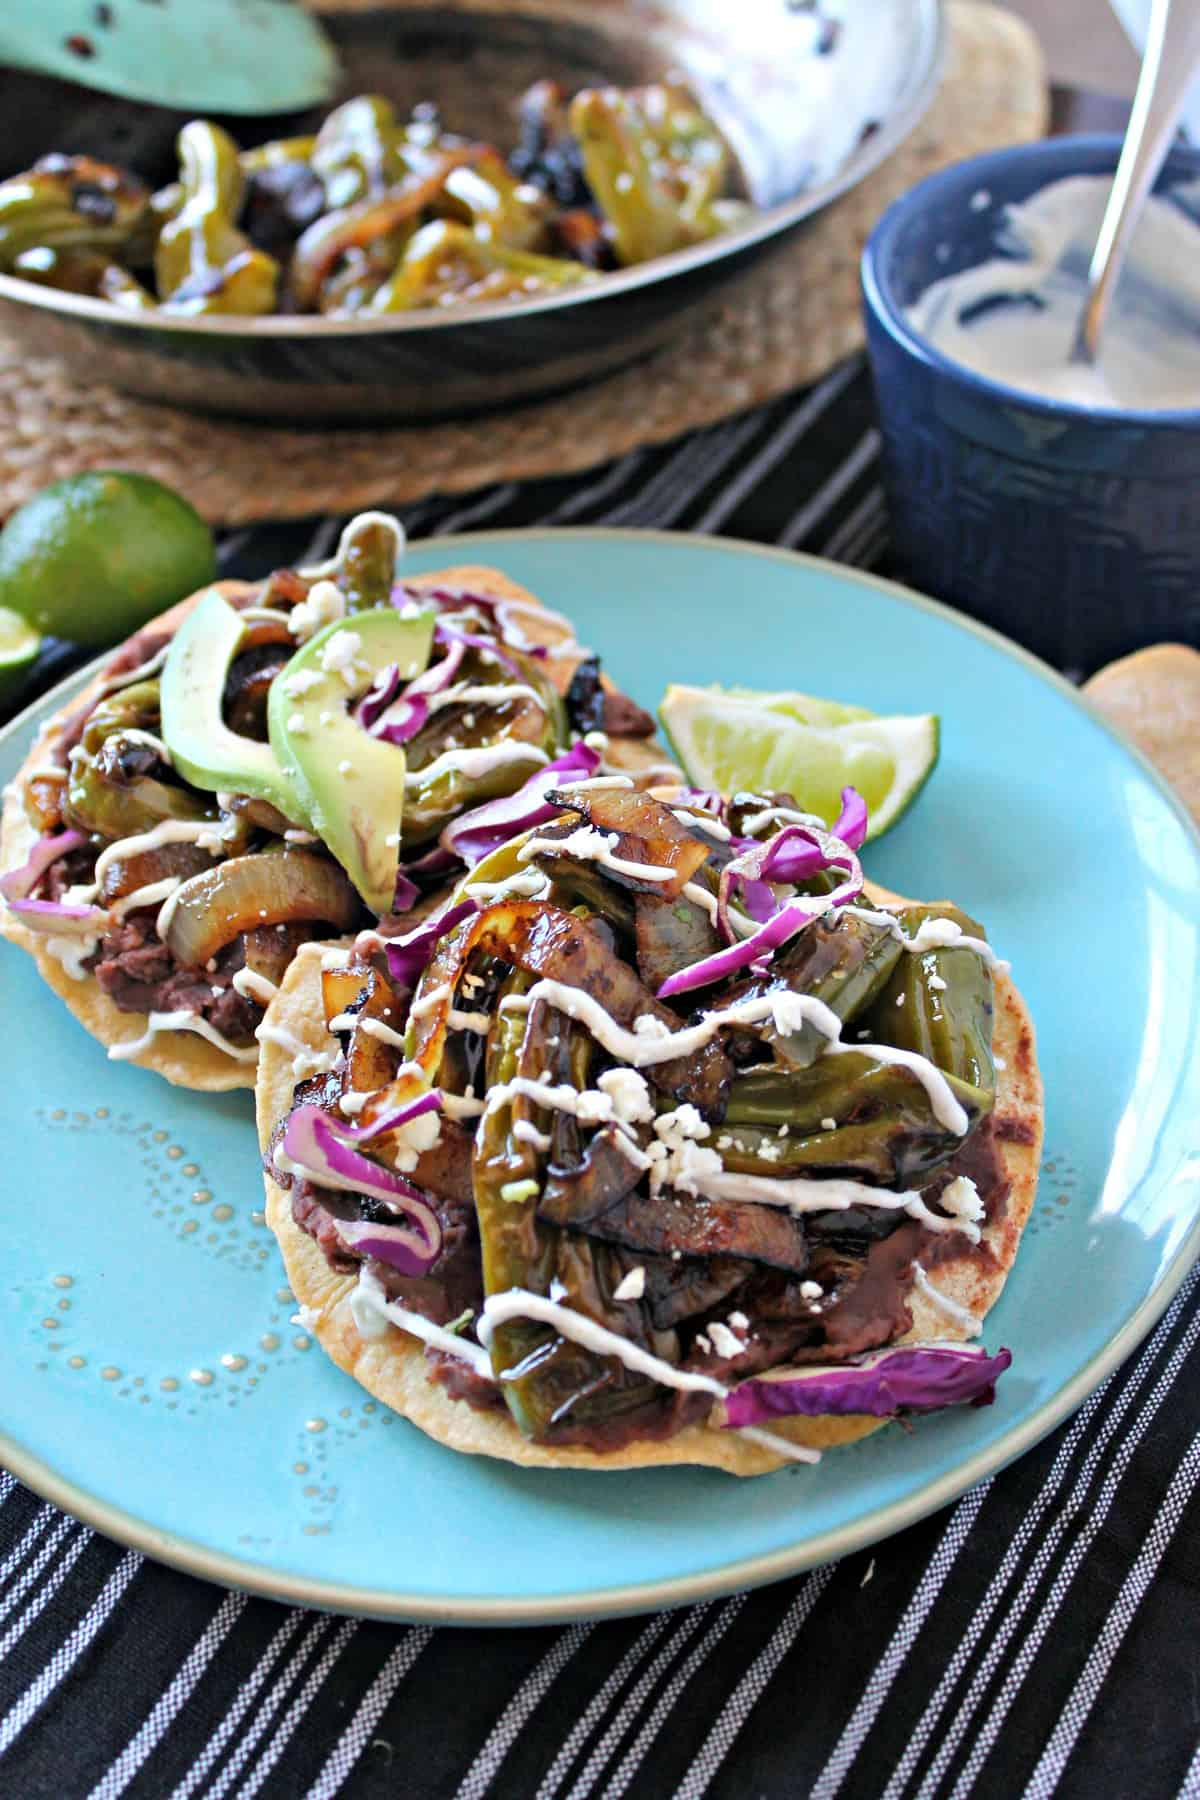 Charred Shishito Pepper & Refried Bean Tostadas! Just because these crunchy tostadas come together quickly doesn't mean they lack any flavor! Charred Shishito peppers, onions and refried beans drizzled with a Cumin & Lime Yogurt Sauce make a quick but delicious meal.